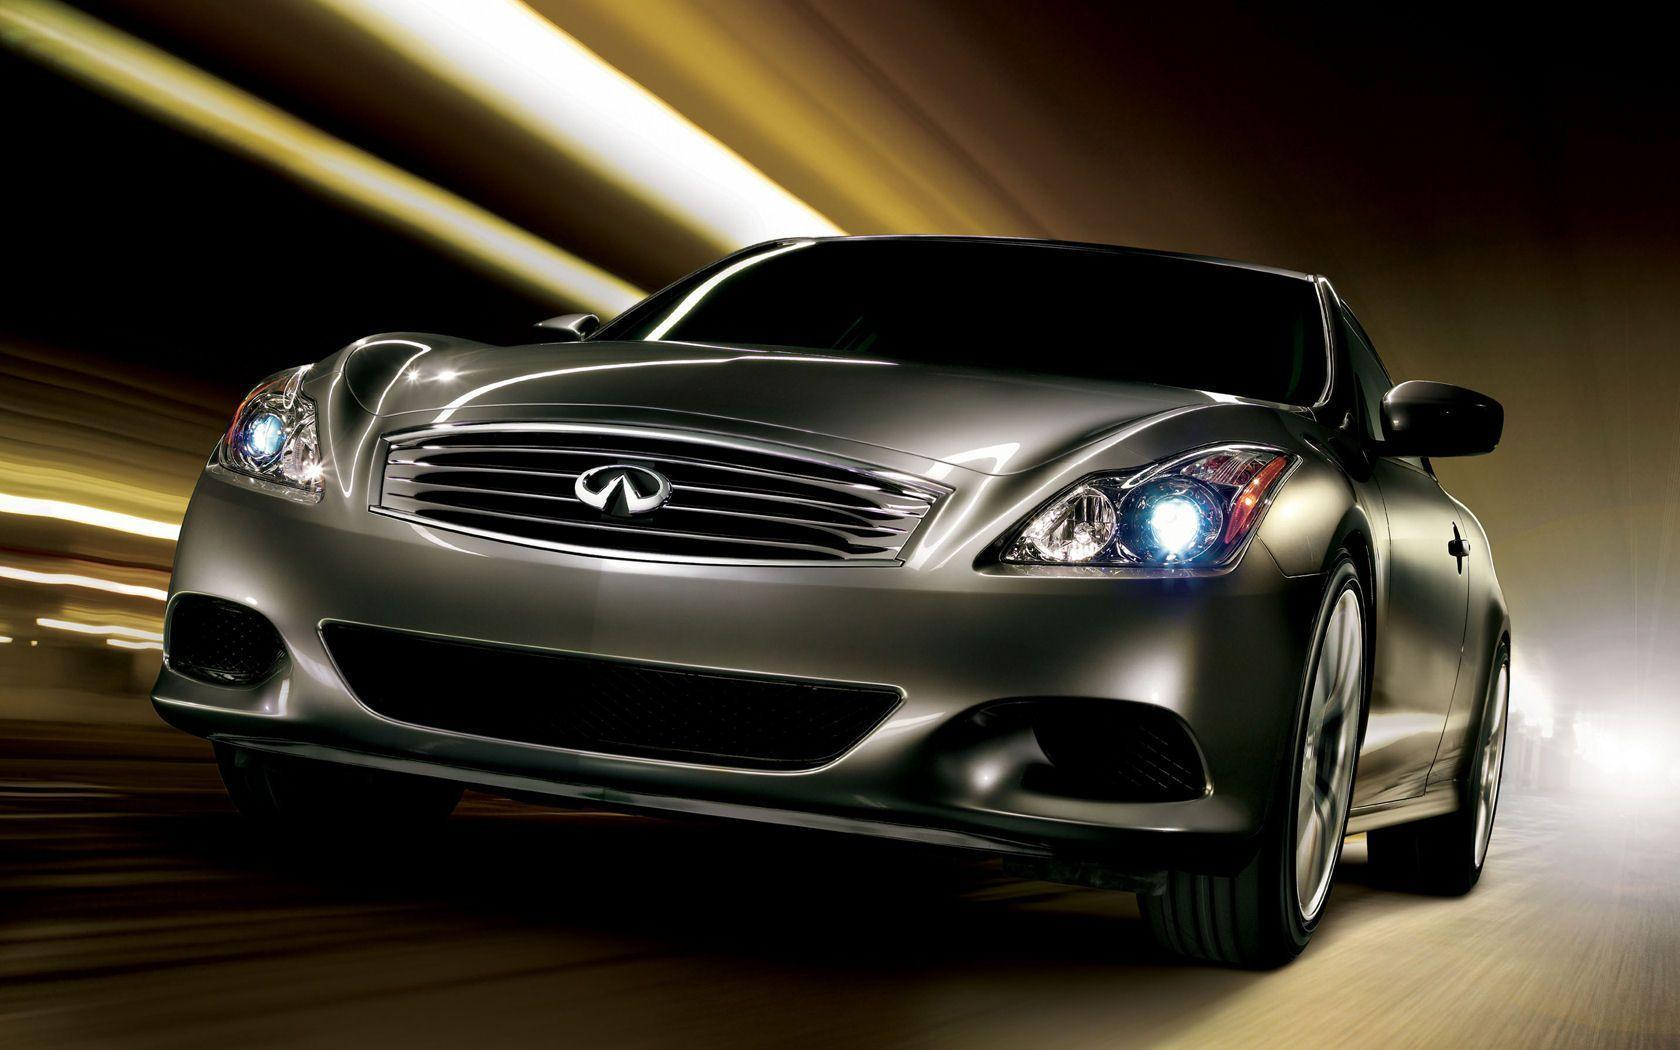 Infiniti G35 & G37, Sedan, Coupe, Convertible - Free Widescreen ...